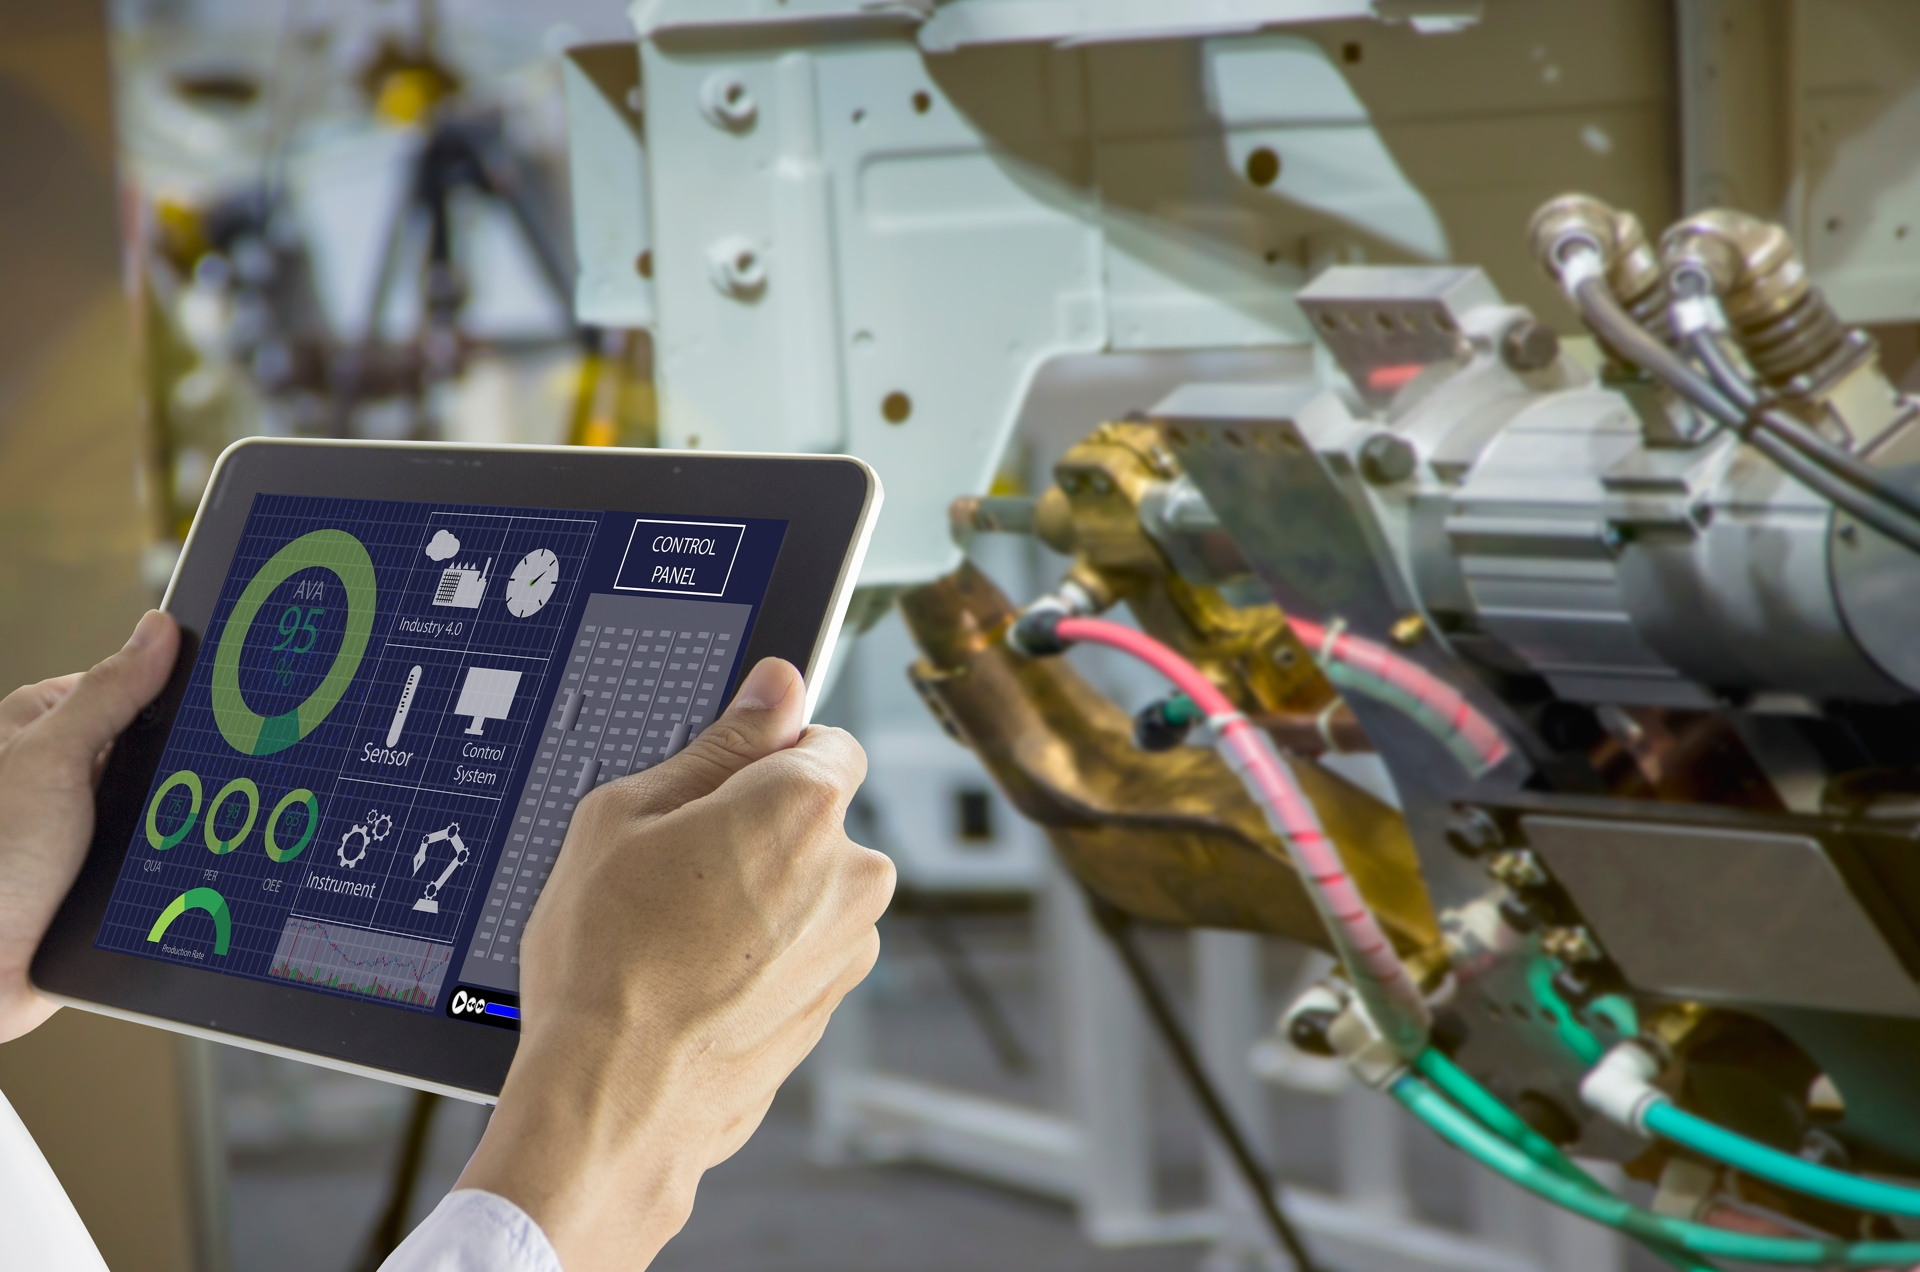 Production Specialists are essential in a smart manufacturing environment